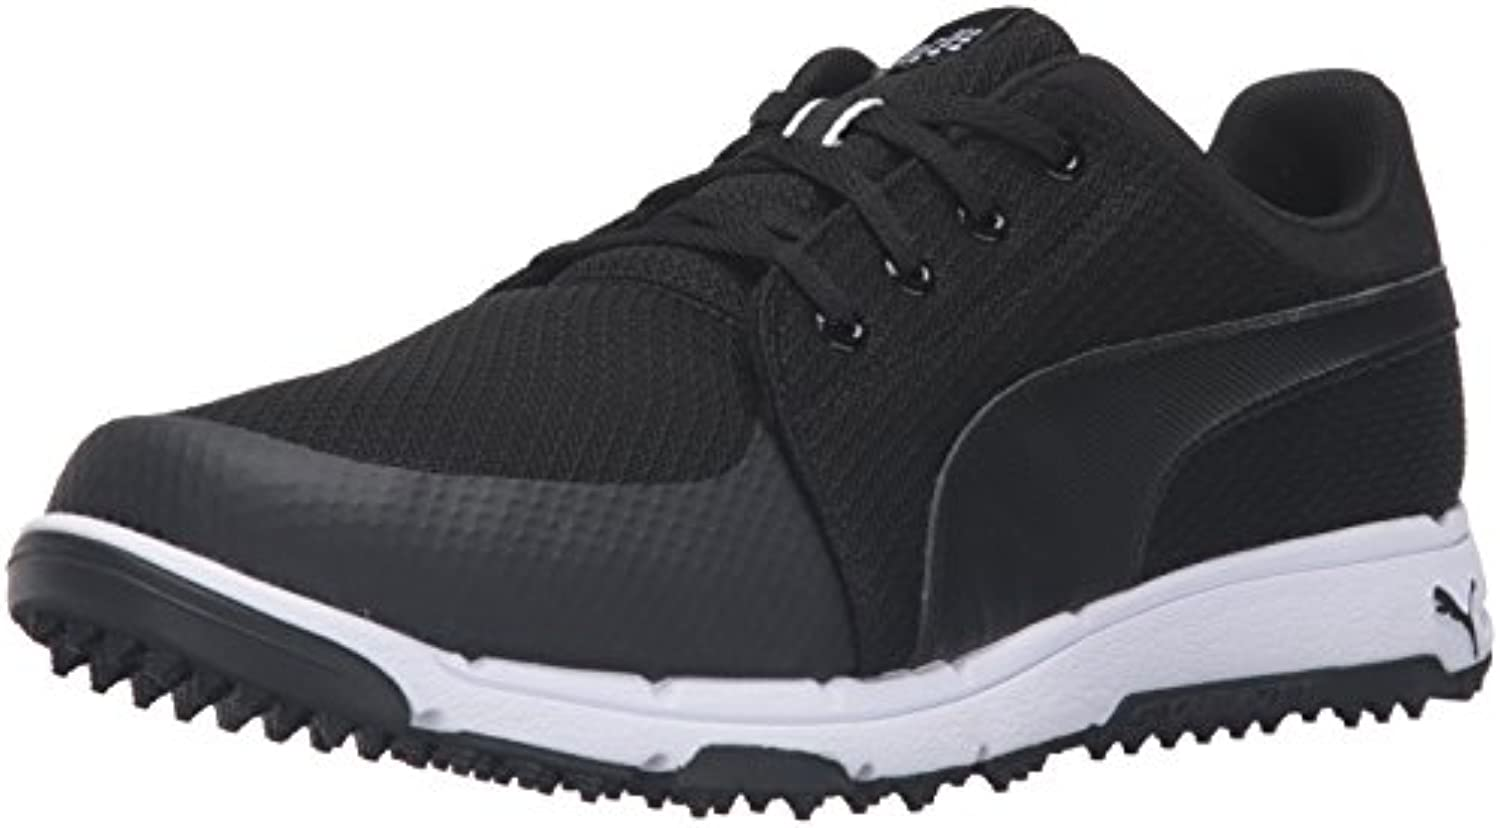 PUMA Men's Grip Sport Golf Shoe  Black/White  9.5 Medium